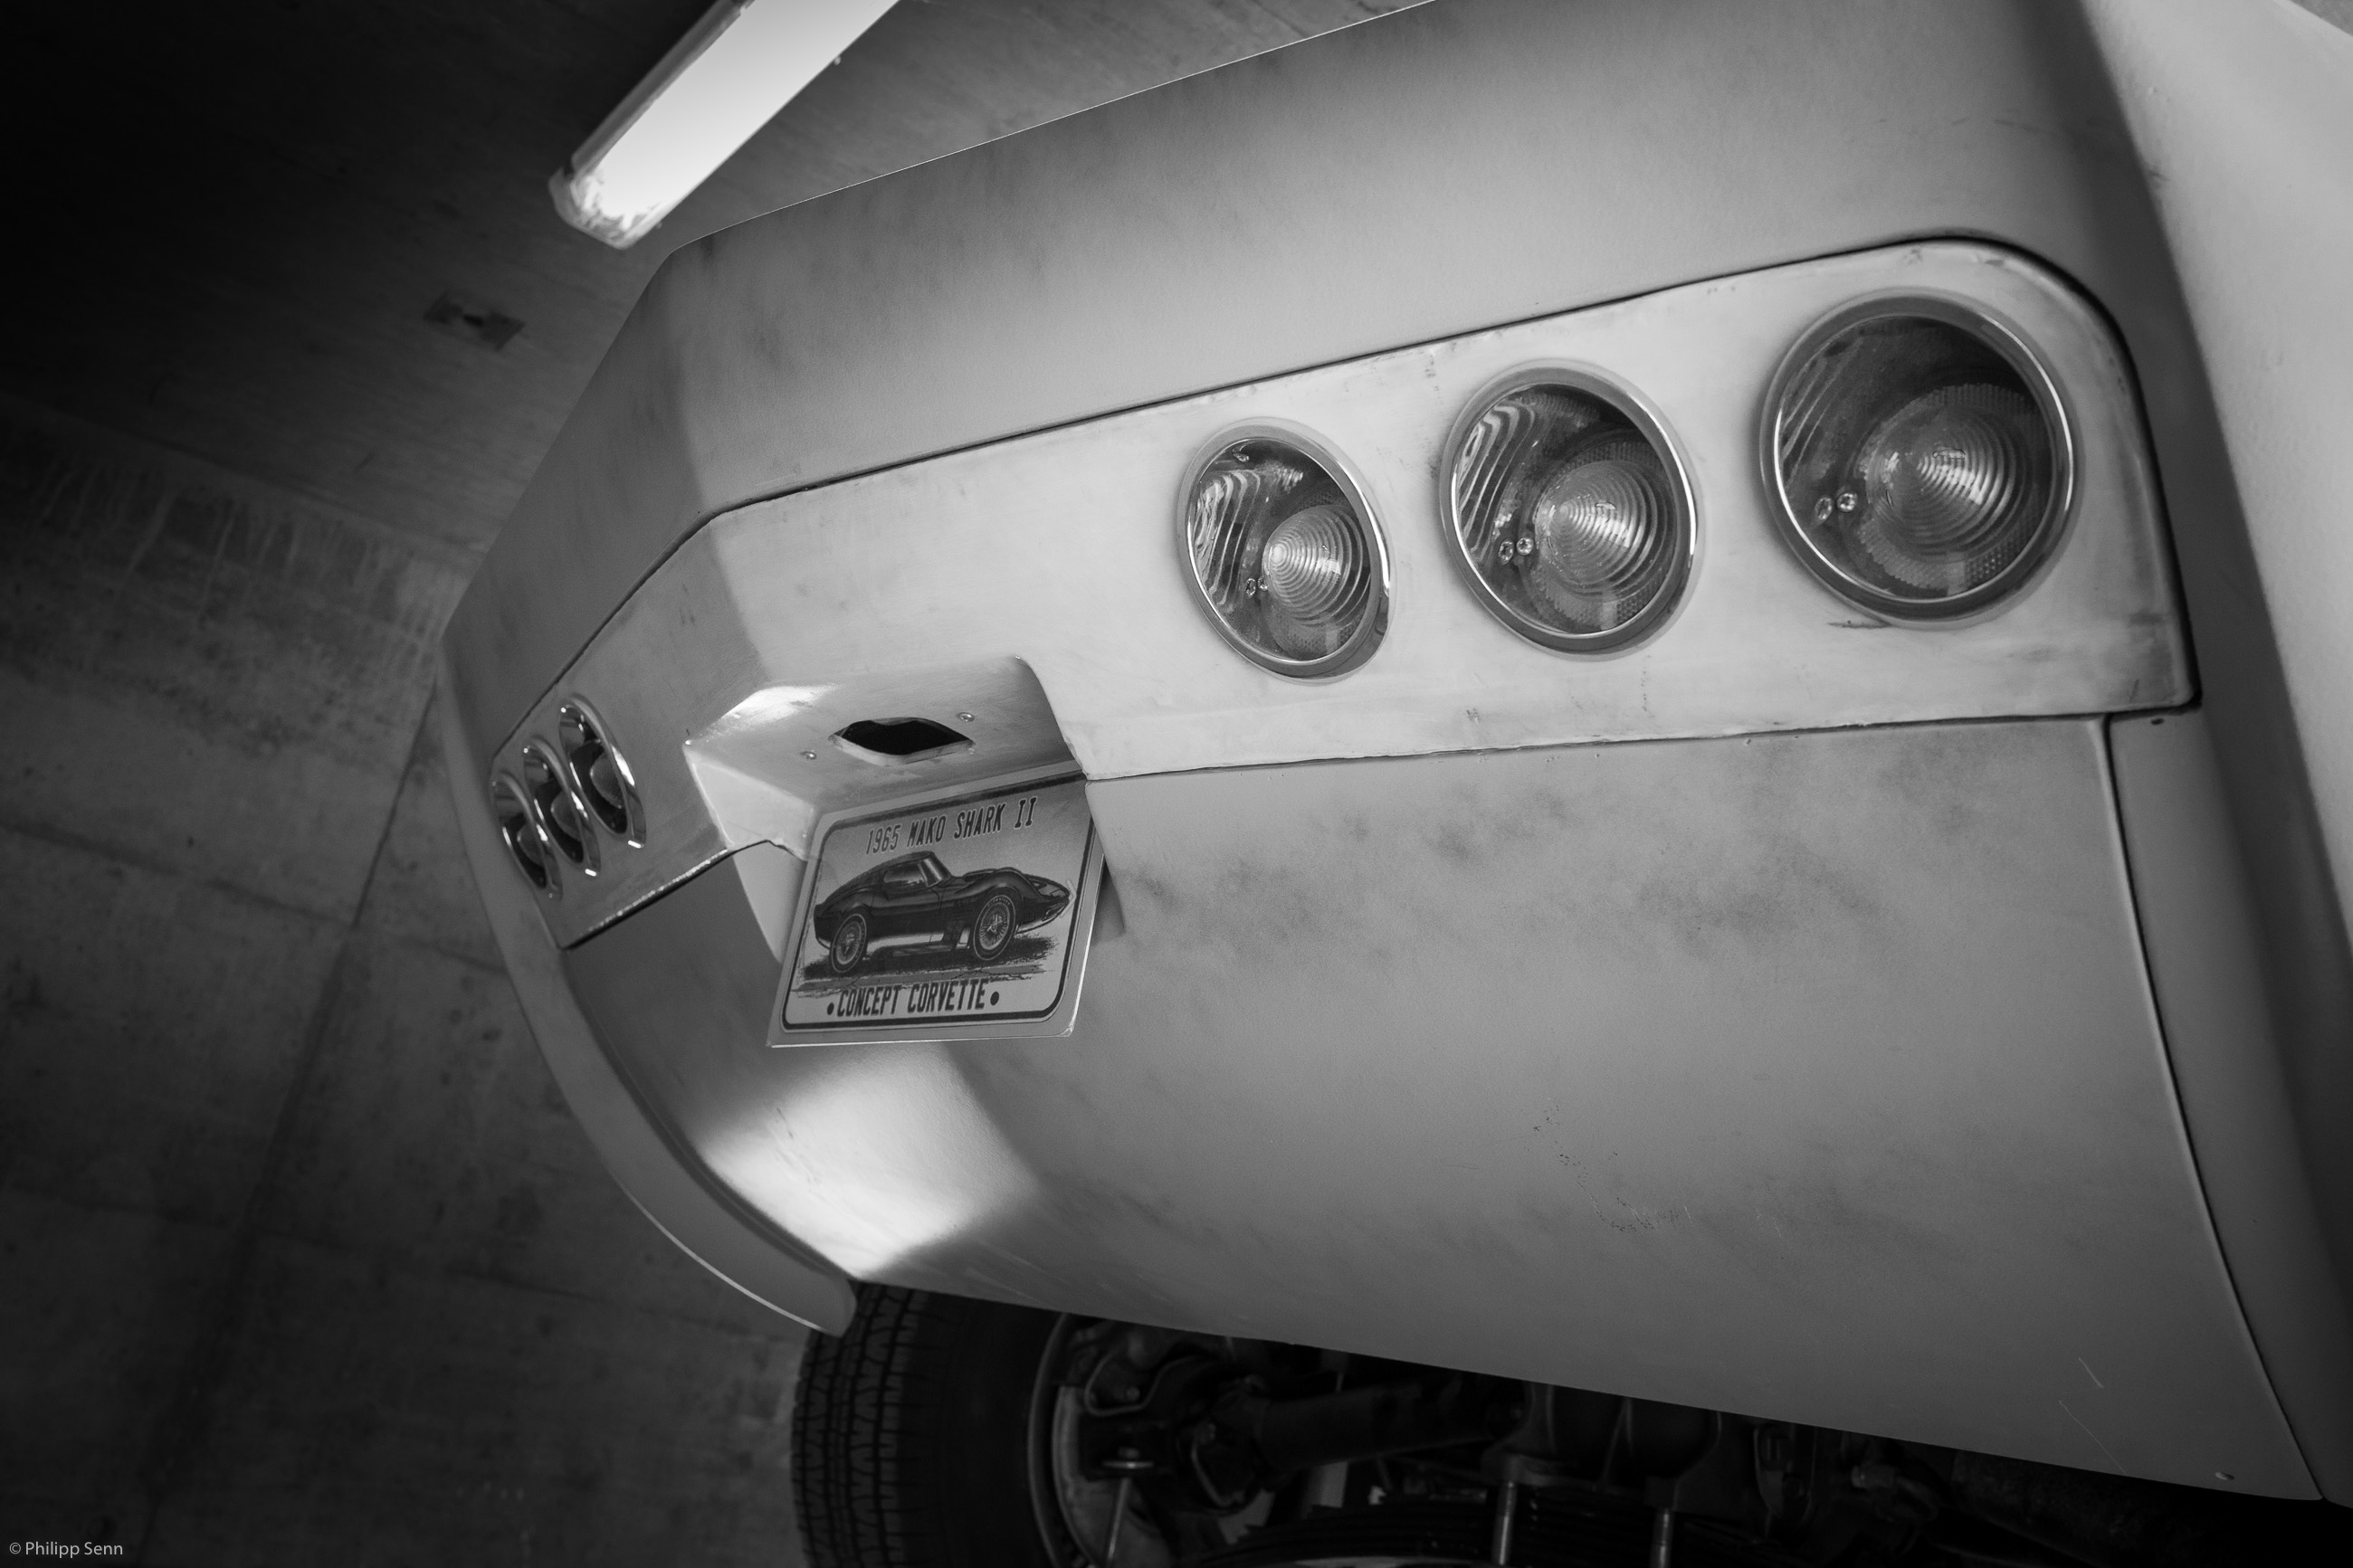 philippsenn_2015_speed garage L1000710